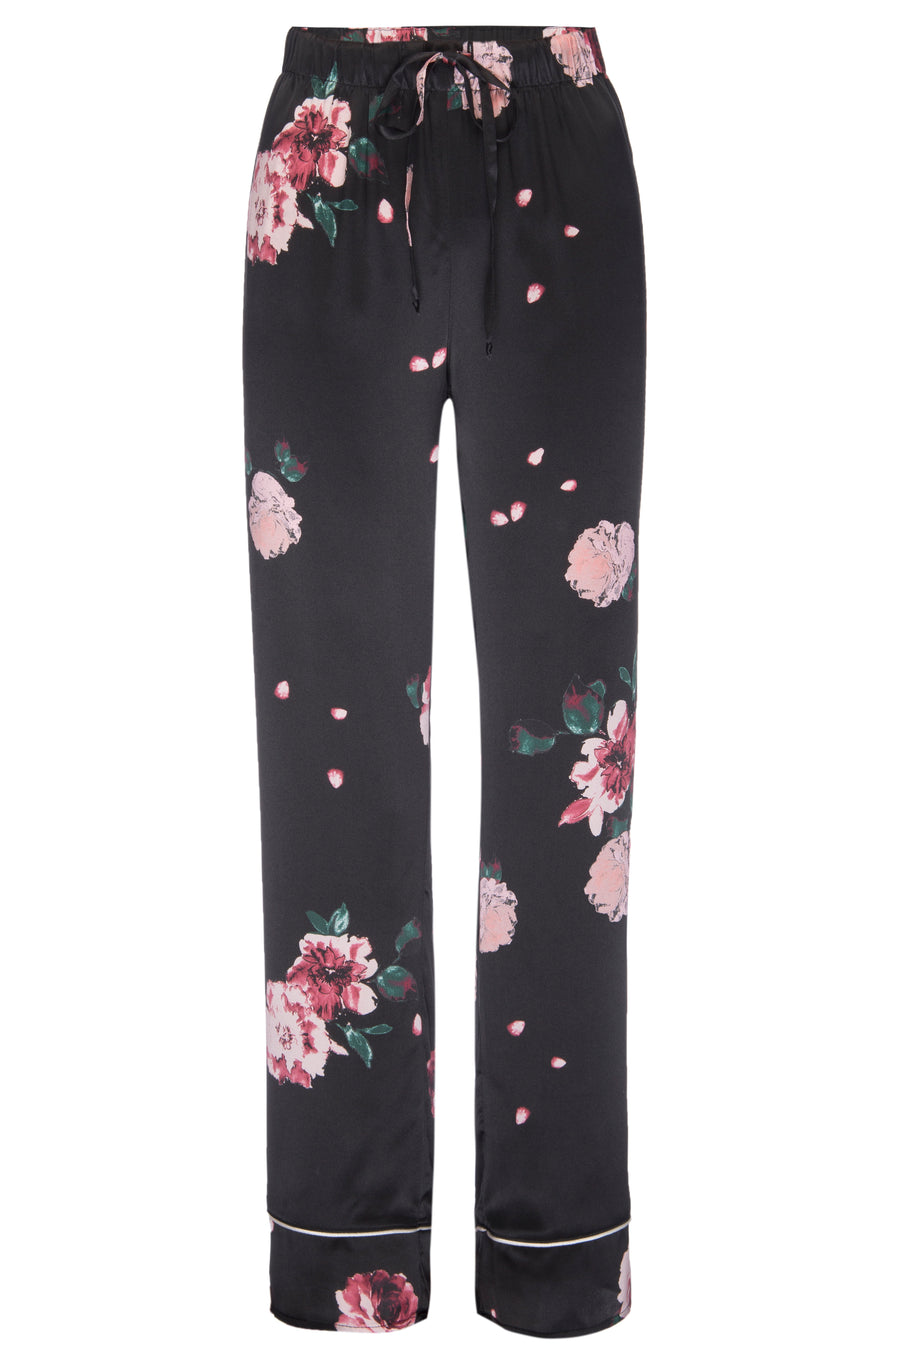 Silk Charmeuse PJ Pants: Black Rose Print